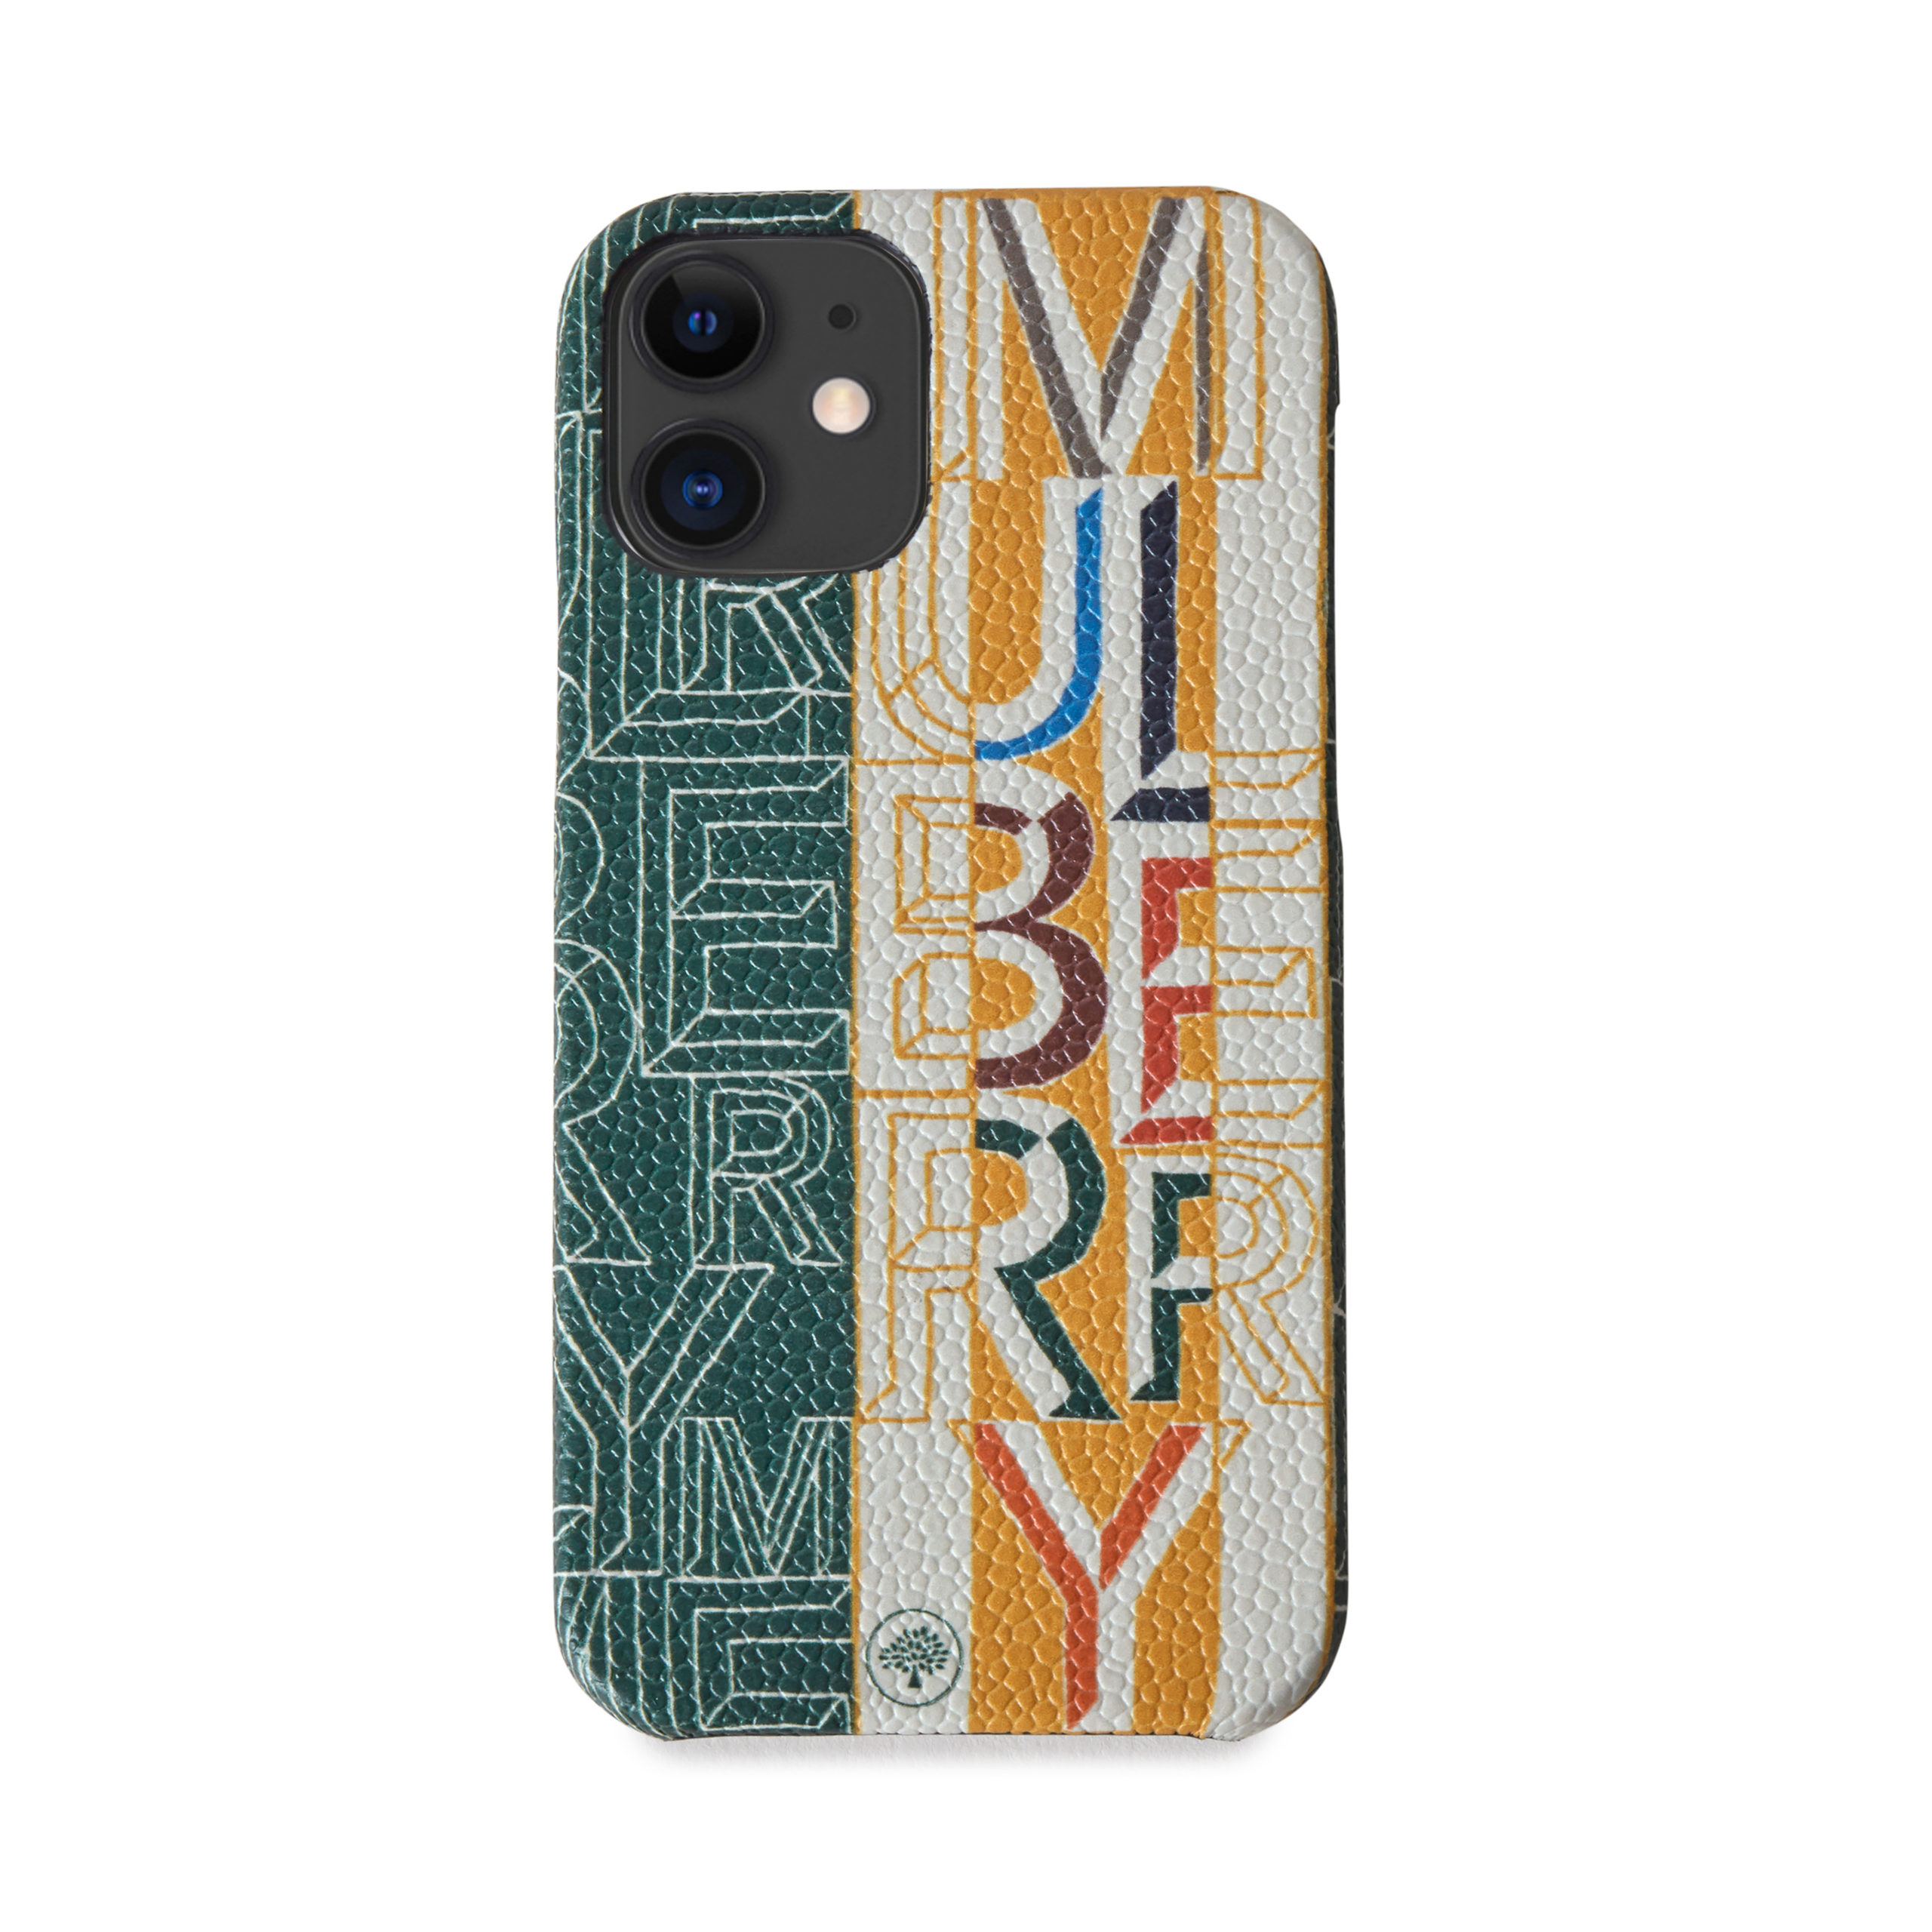 mulberry-iphone-case-pro-max-12